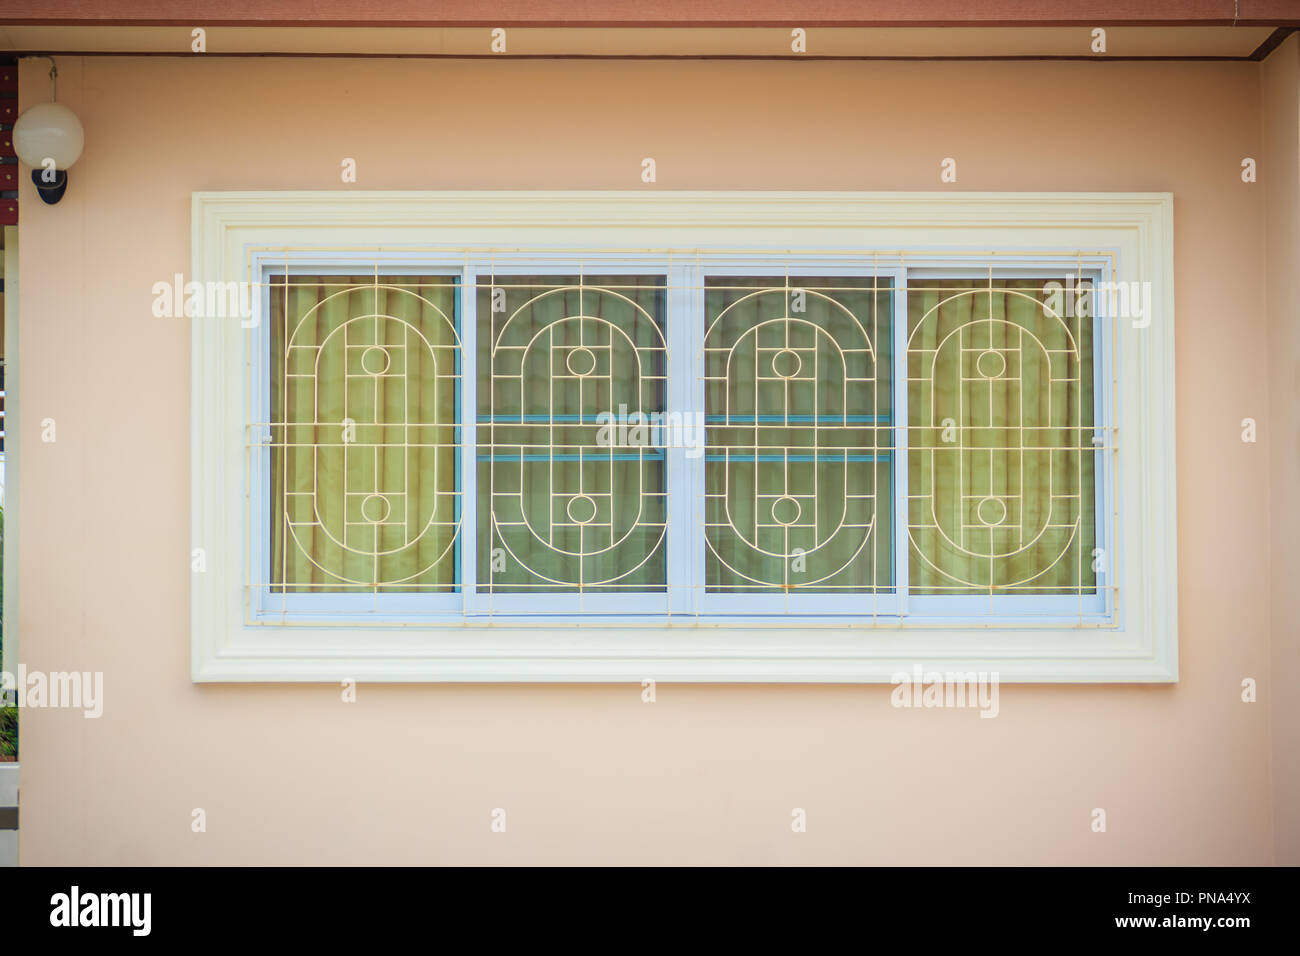 Window with wrought iron to prevent theft. Newly built house with window burglar bars and can see the decorated curtain through the window glass. Stock Photo